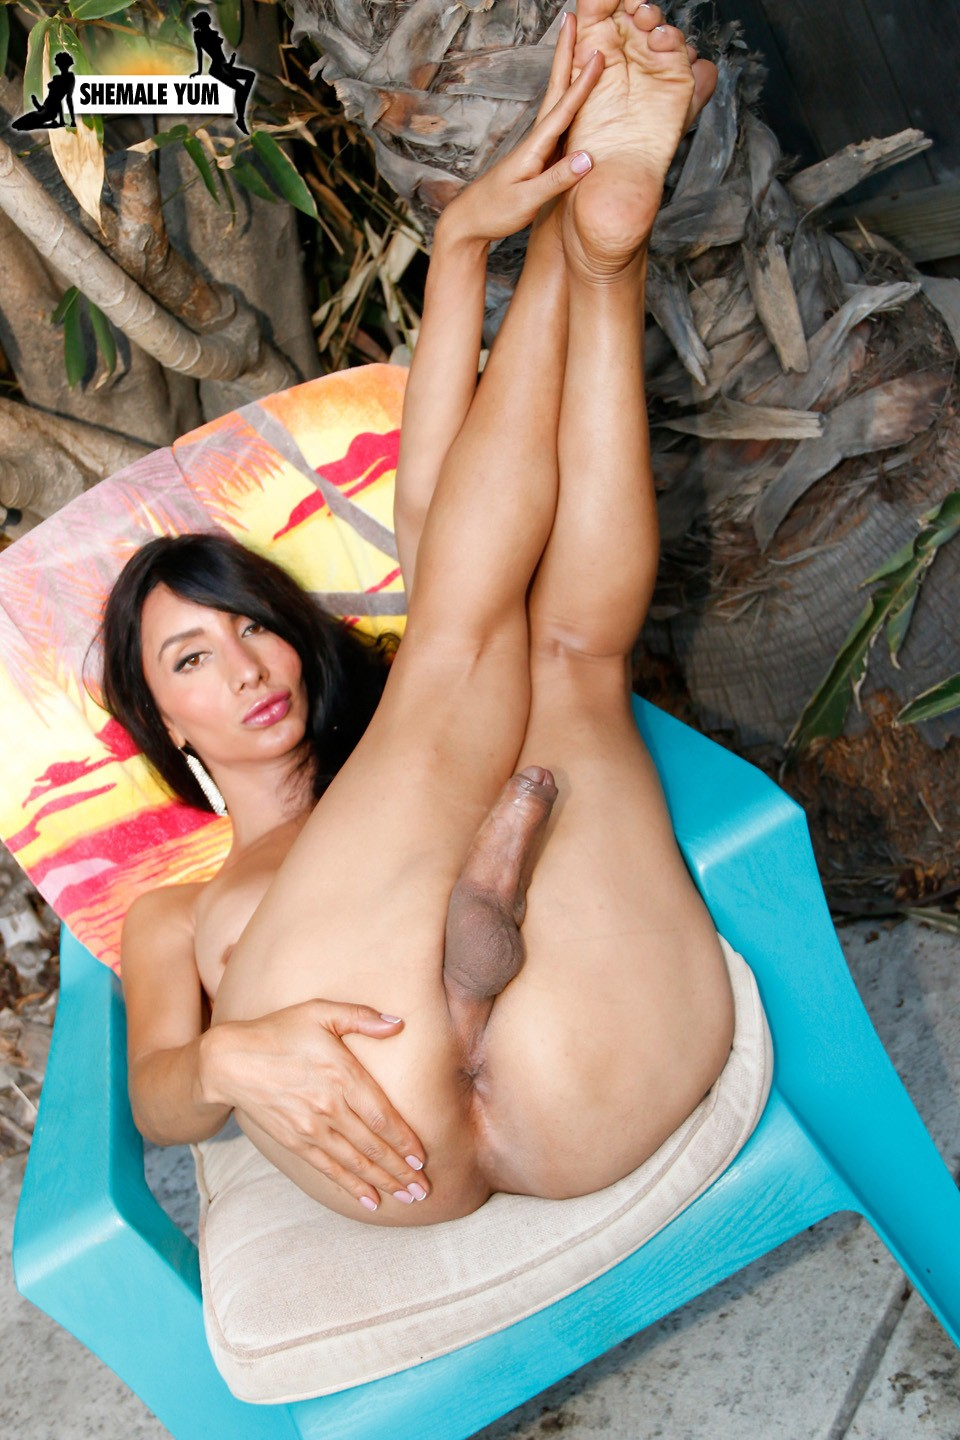 shemale-dorian-cock-lady-4